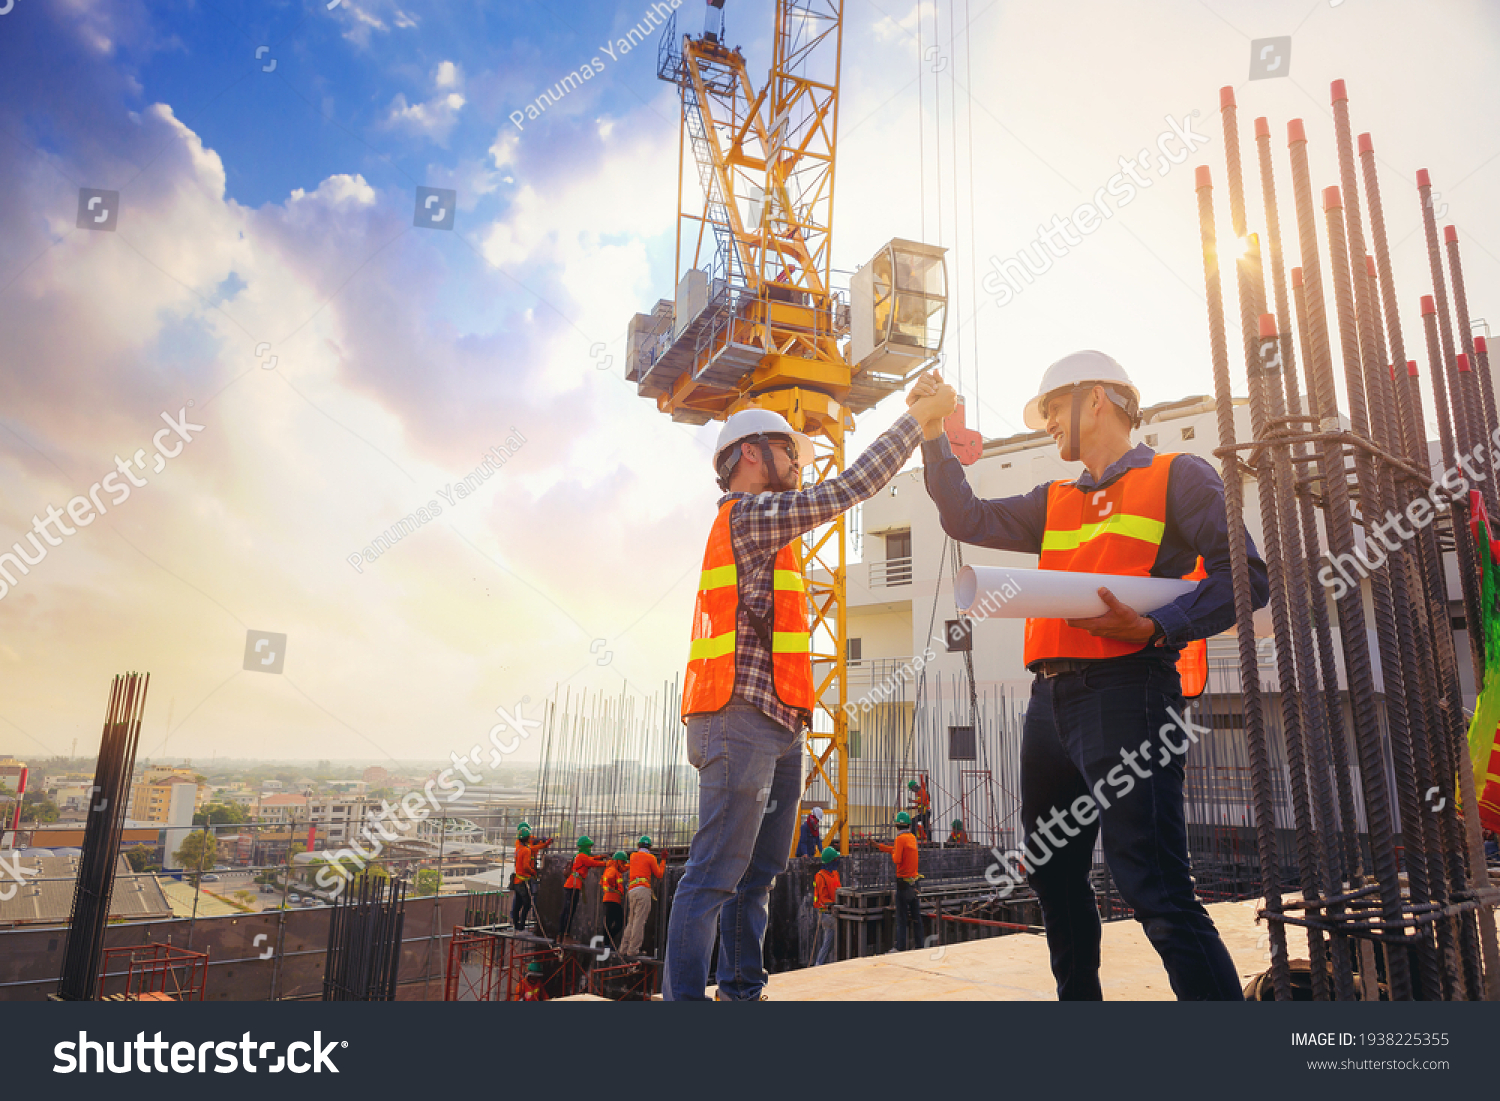 Architect and engineer construction workers shaking hands while working at outdoors construction site. Building construction collaboration concept #1938225355